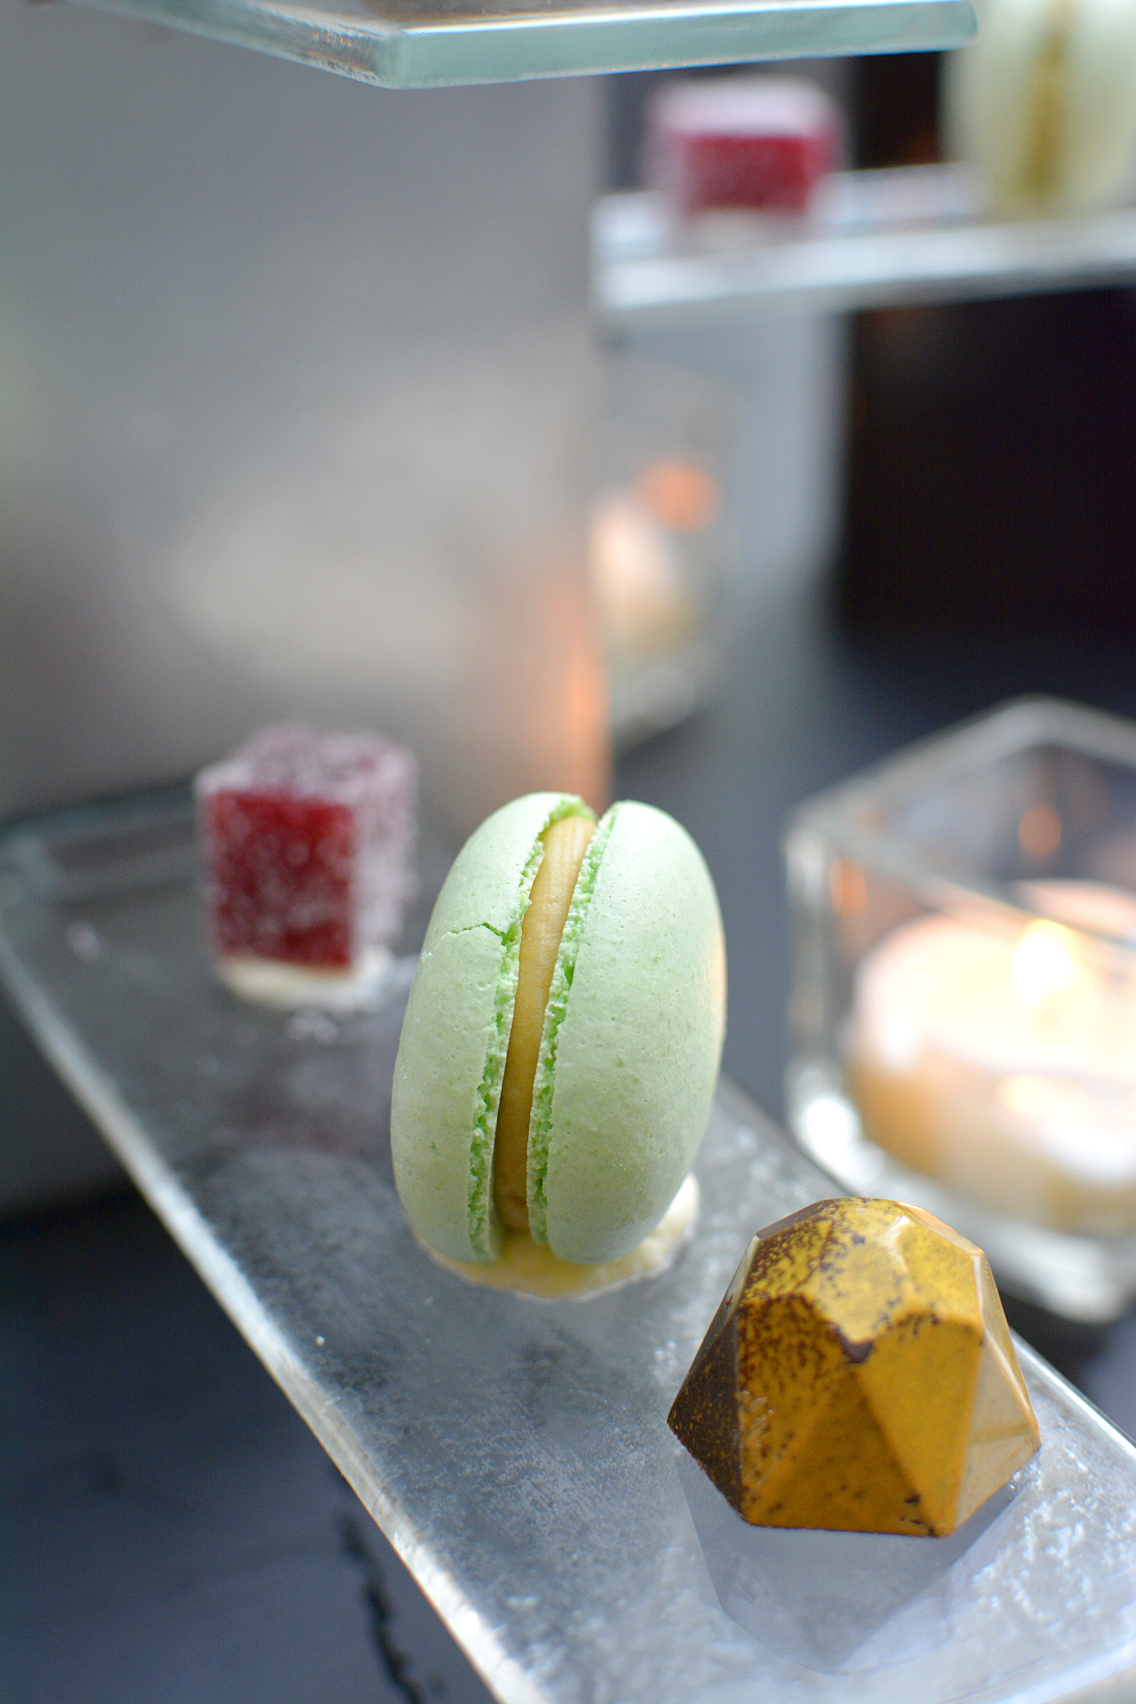 Sofitel Chicago Mignardises macarons, pate fruits, molded chocolates 6